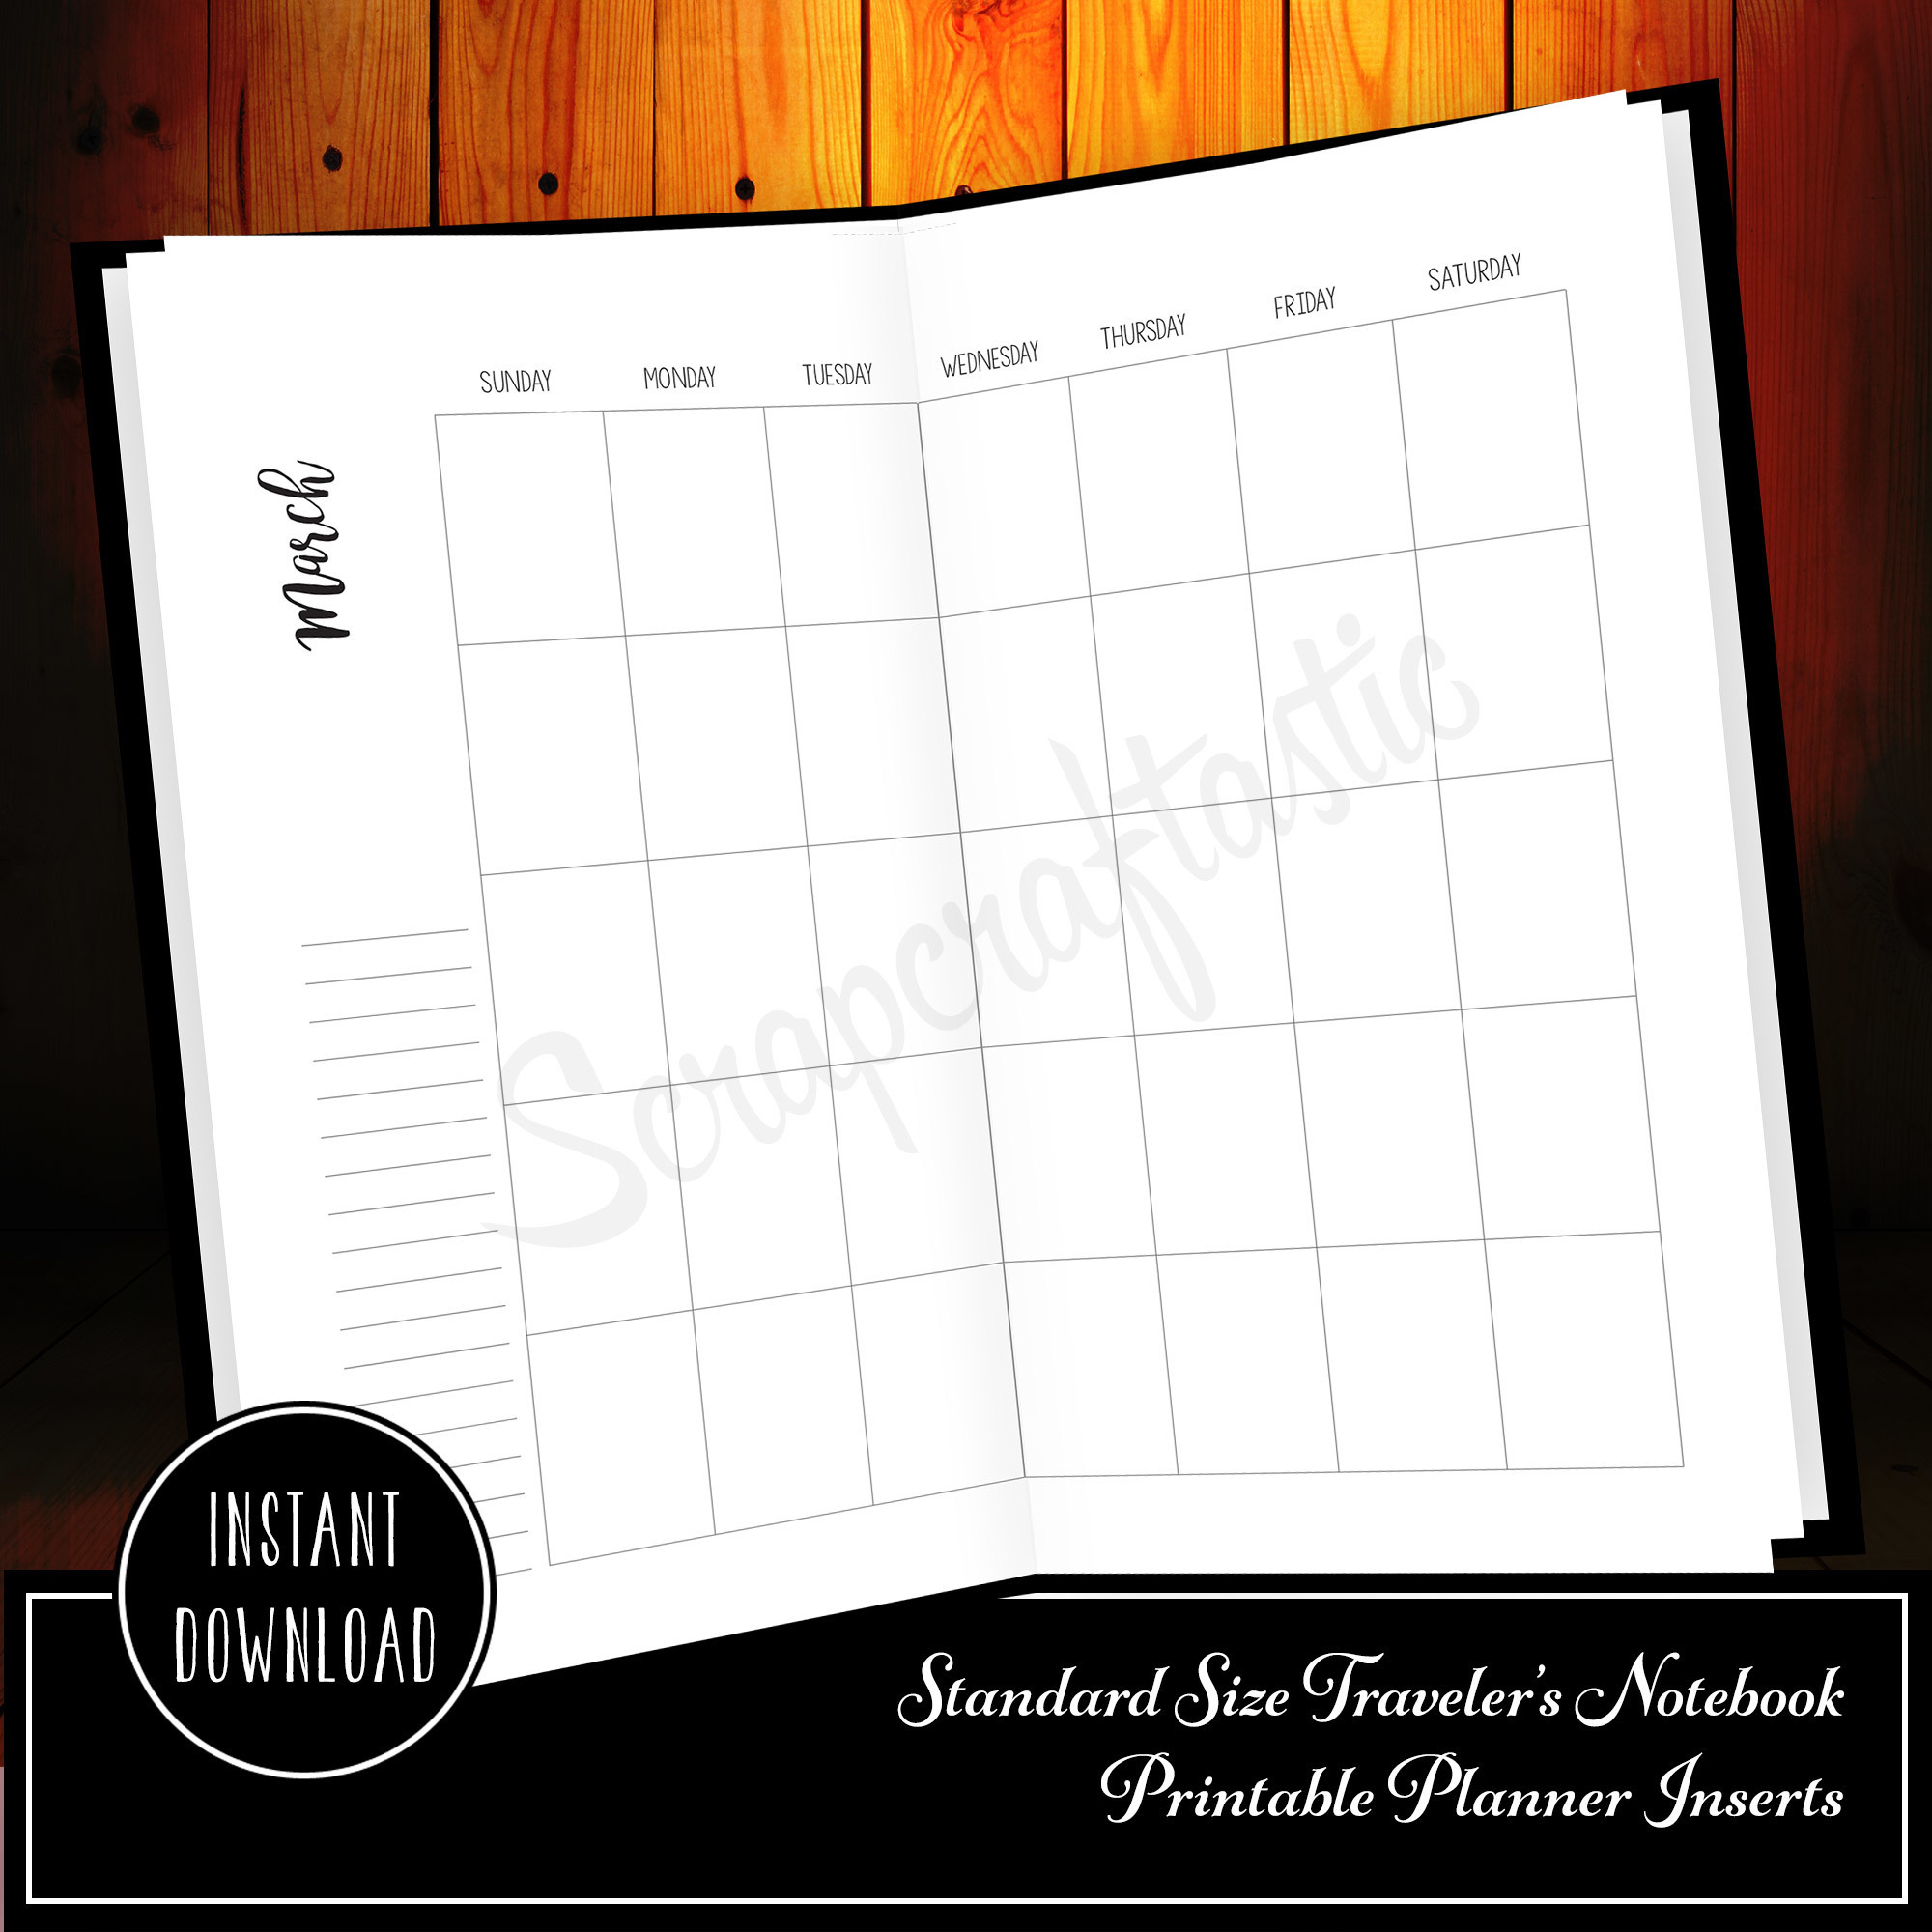 One Year of Monthly Inserts (MO2P) - Regular/Standard Size Traveler's Notebook Printable Inserts 30008